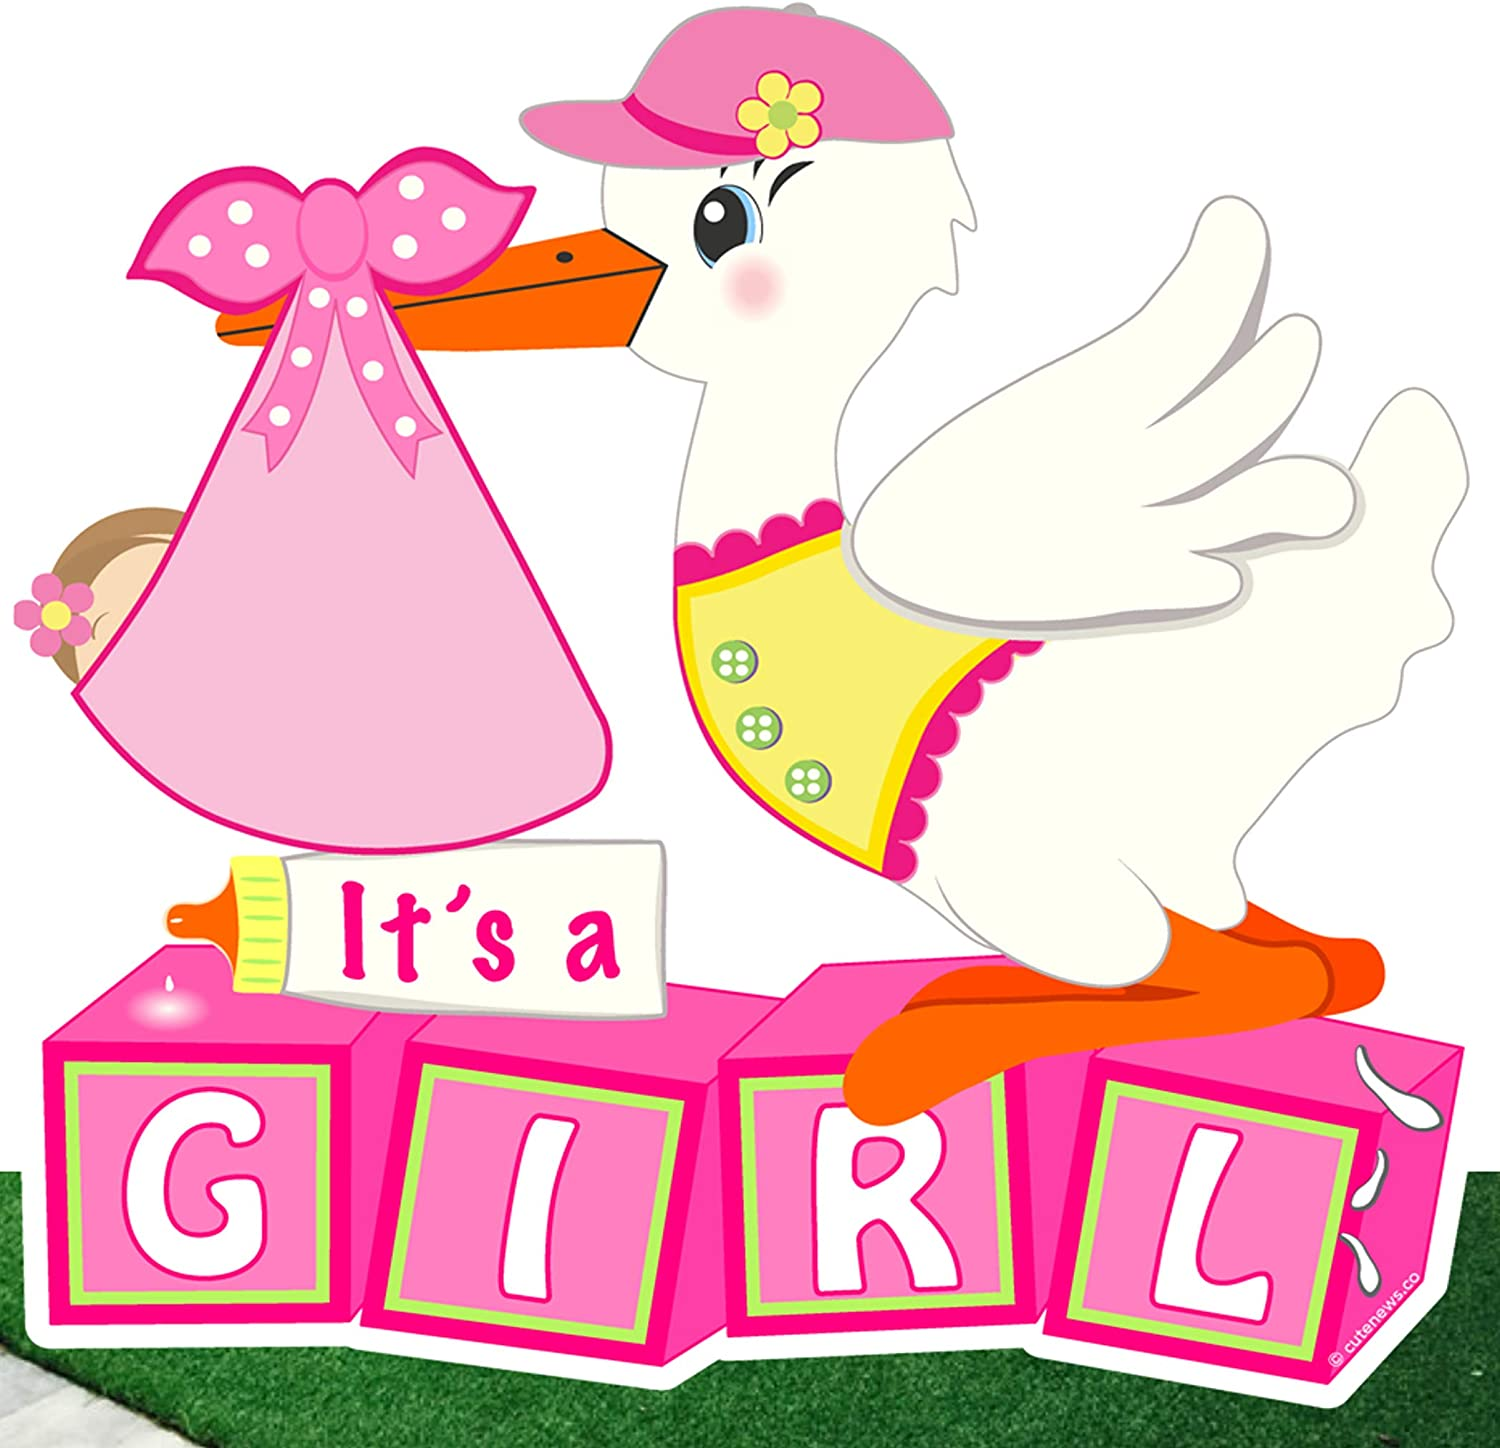 Cute News Welcome It's a Girl Yard Stork Sign - Baby Shower Lawn Art Decoration- Outdoor Birth Announcement - Special Delivery, Pink